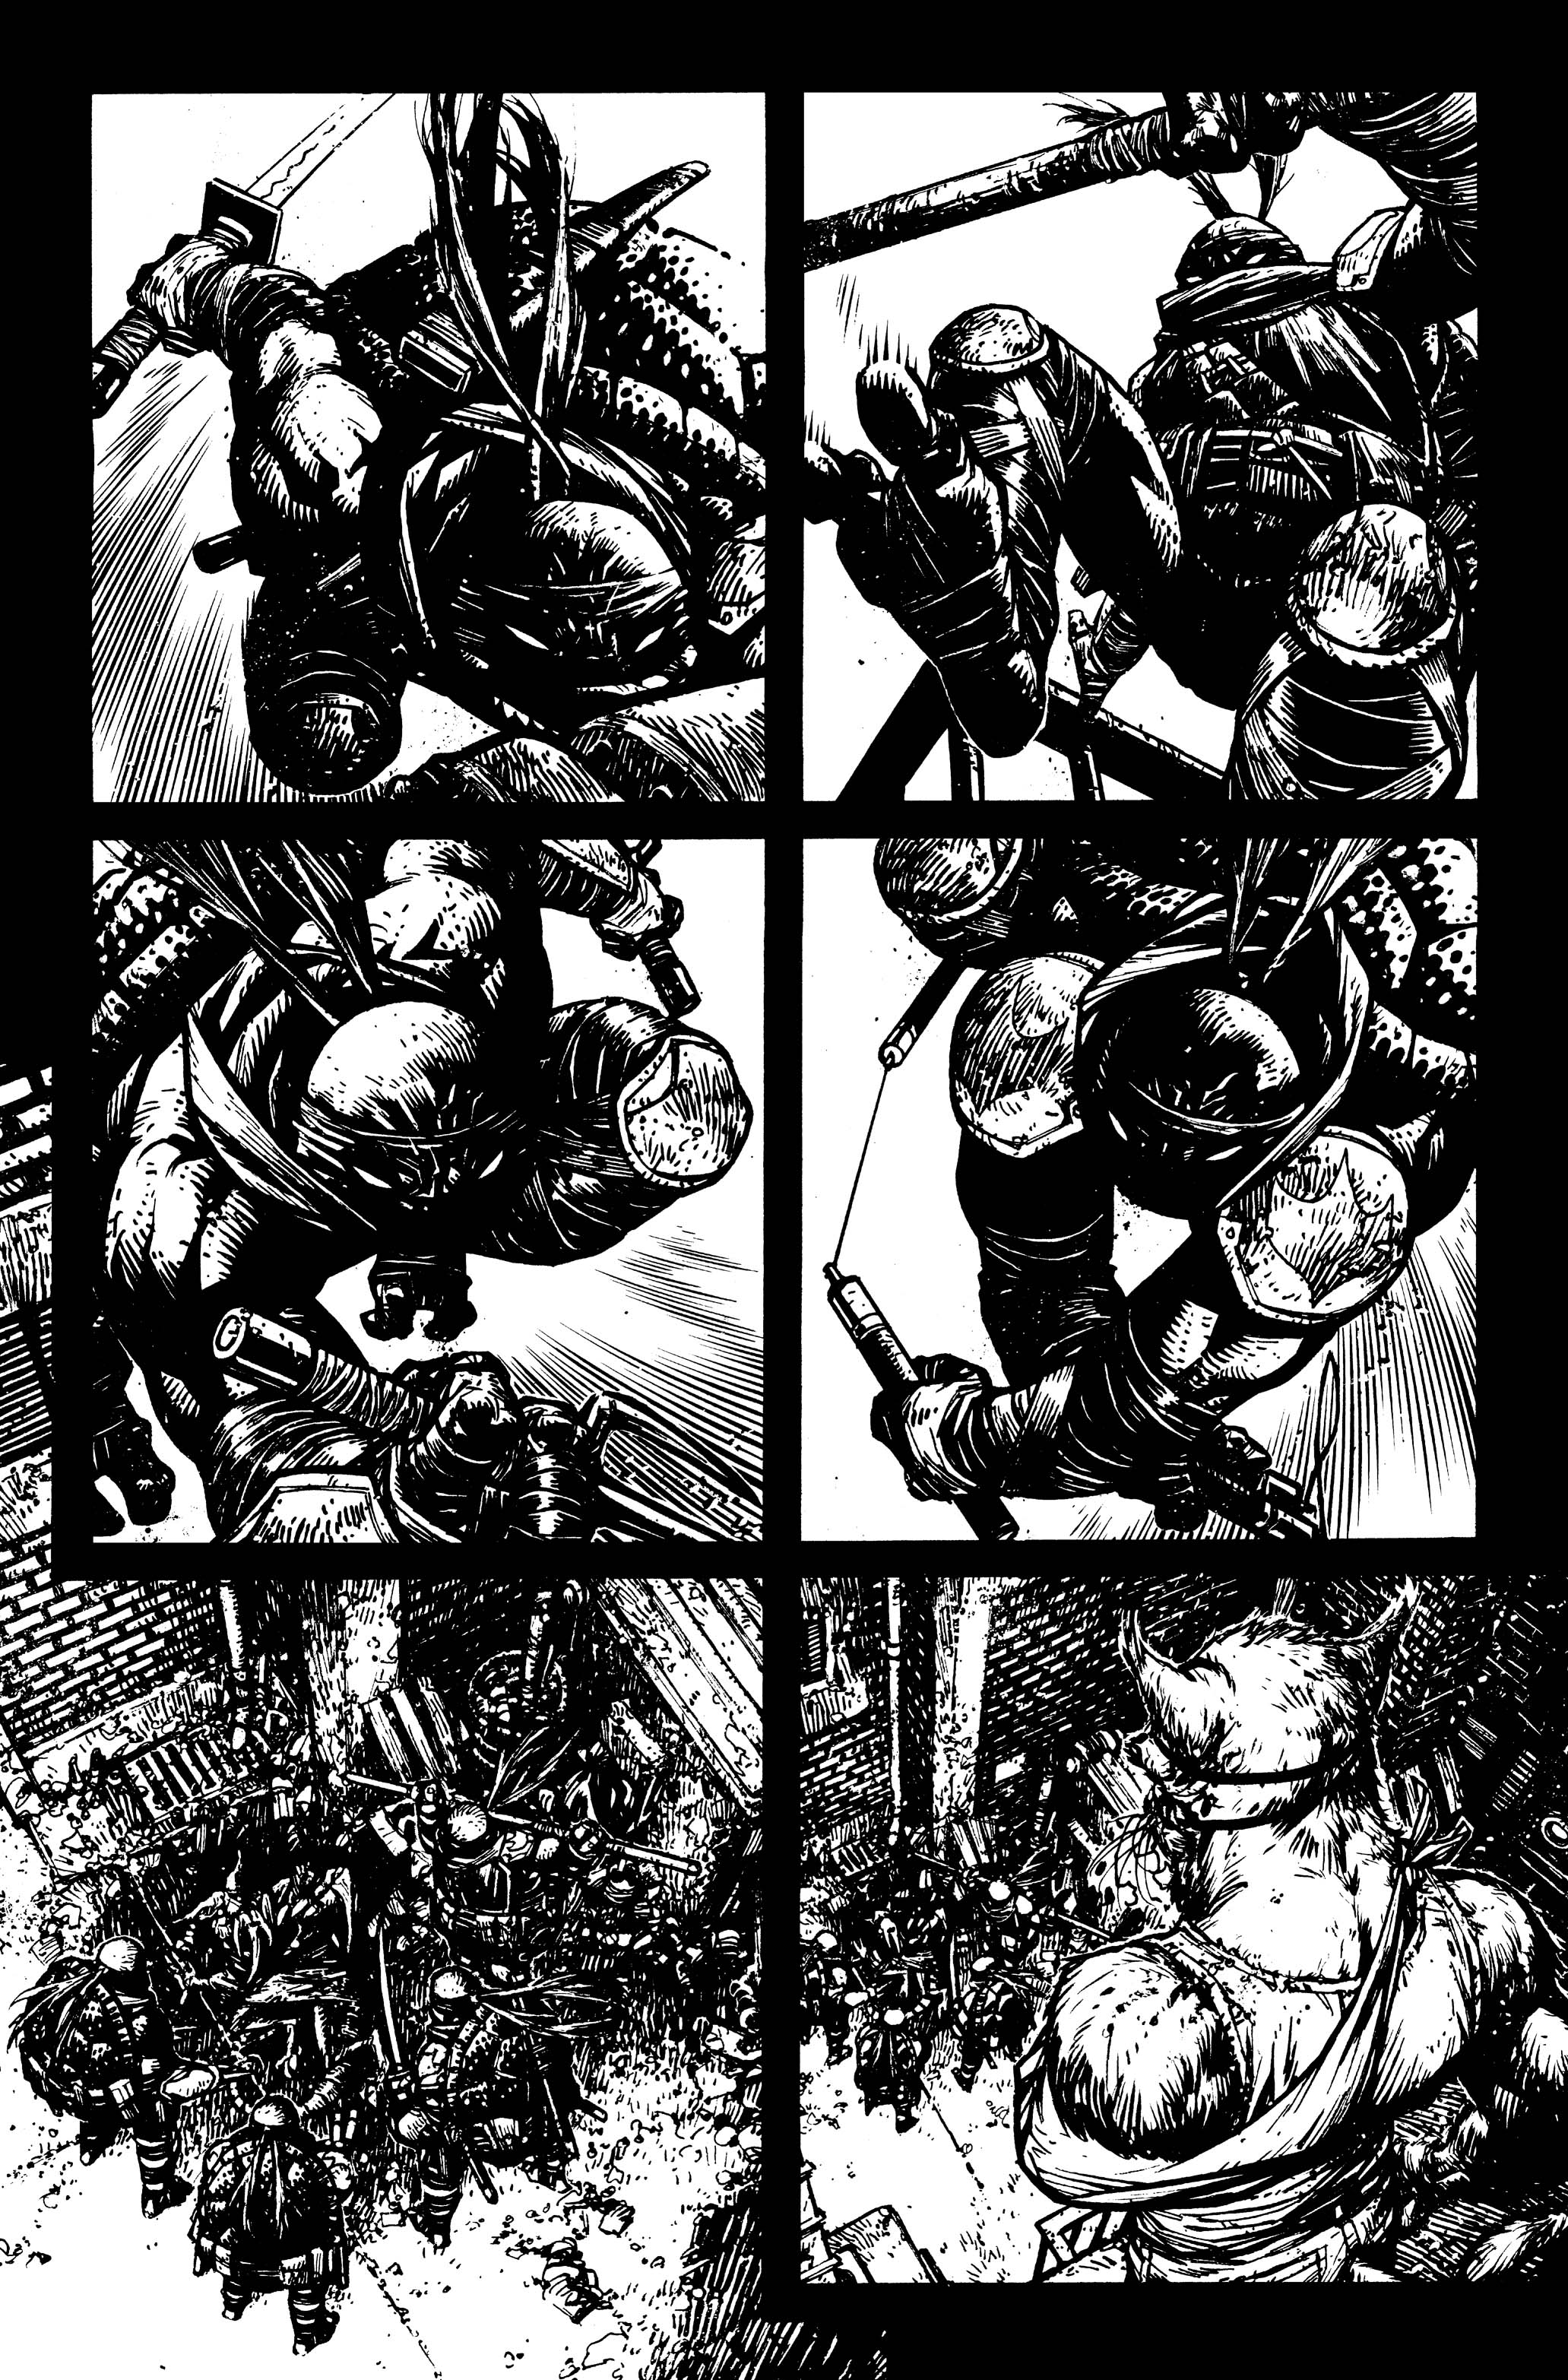 TMNT page 3 inks low res.jpg